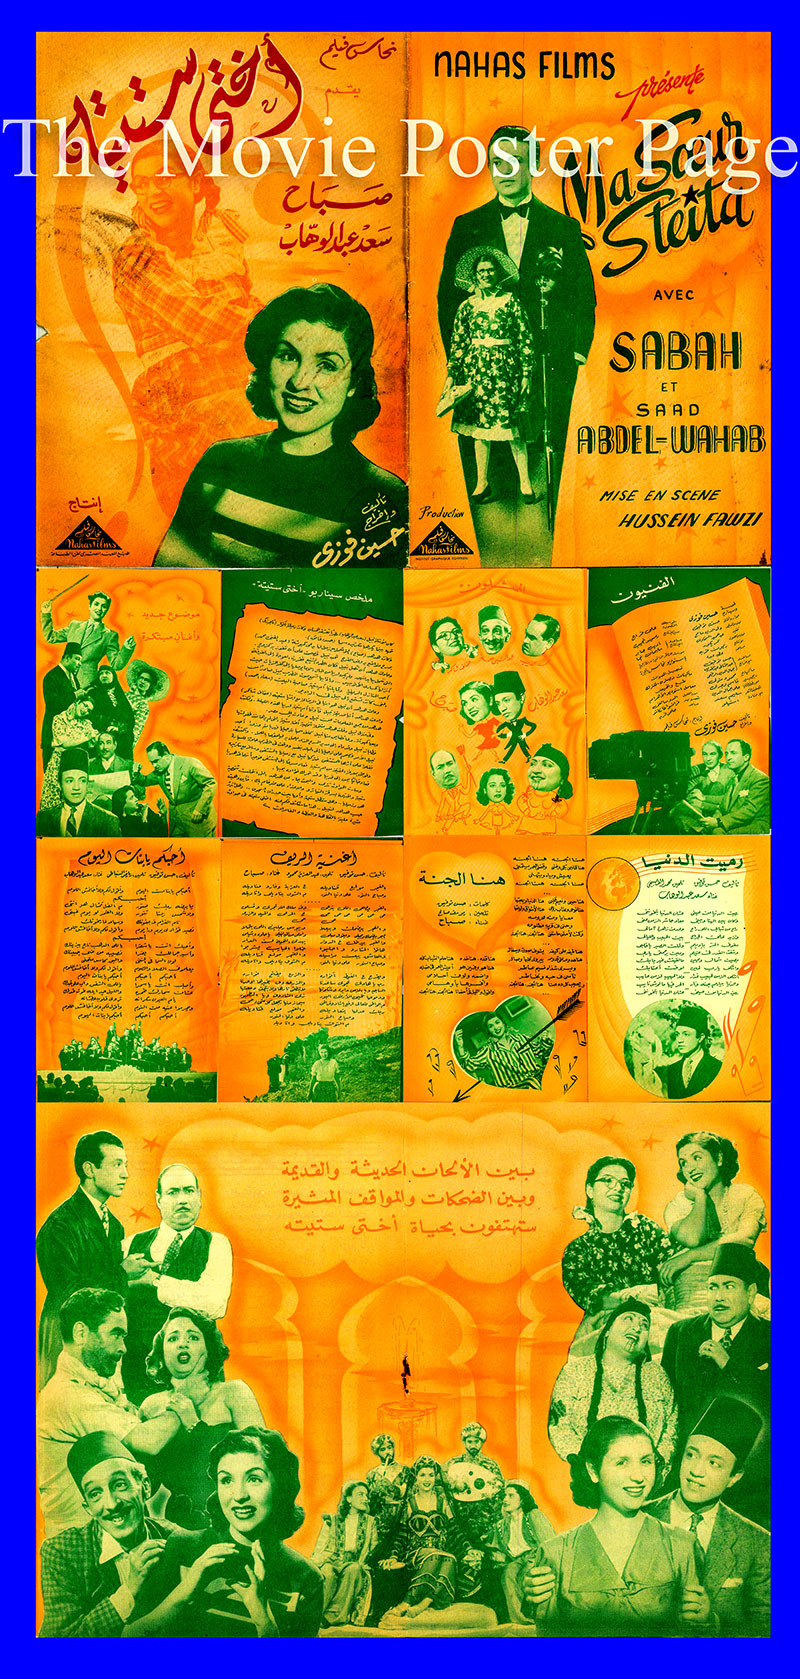 Pictured is an Egyptian promotional program for the 1950 Hussein Fawzi film My Sister Seteita, starring Sabah as Hodhod/Seteita.